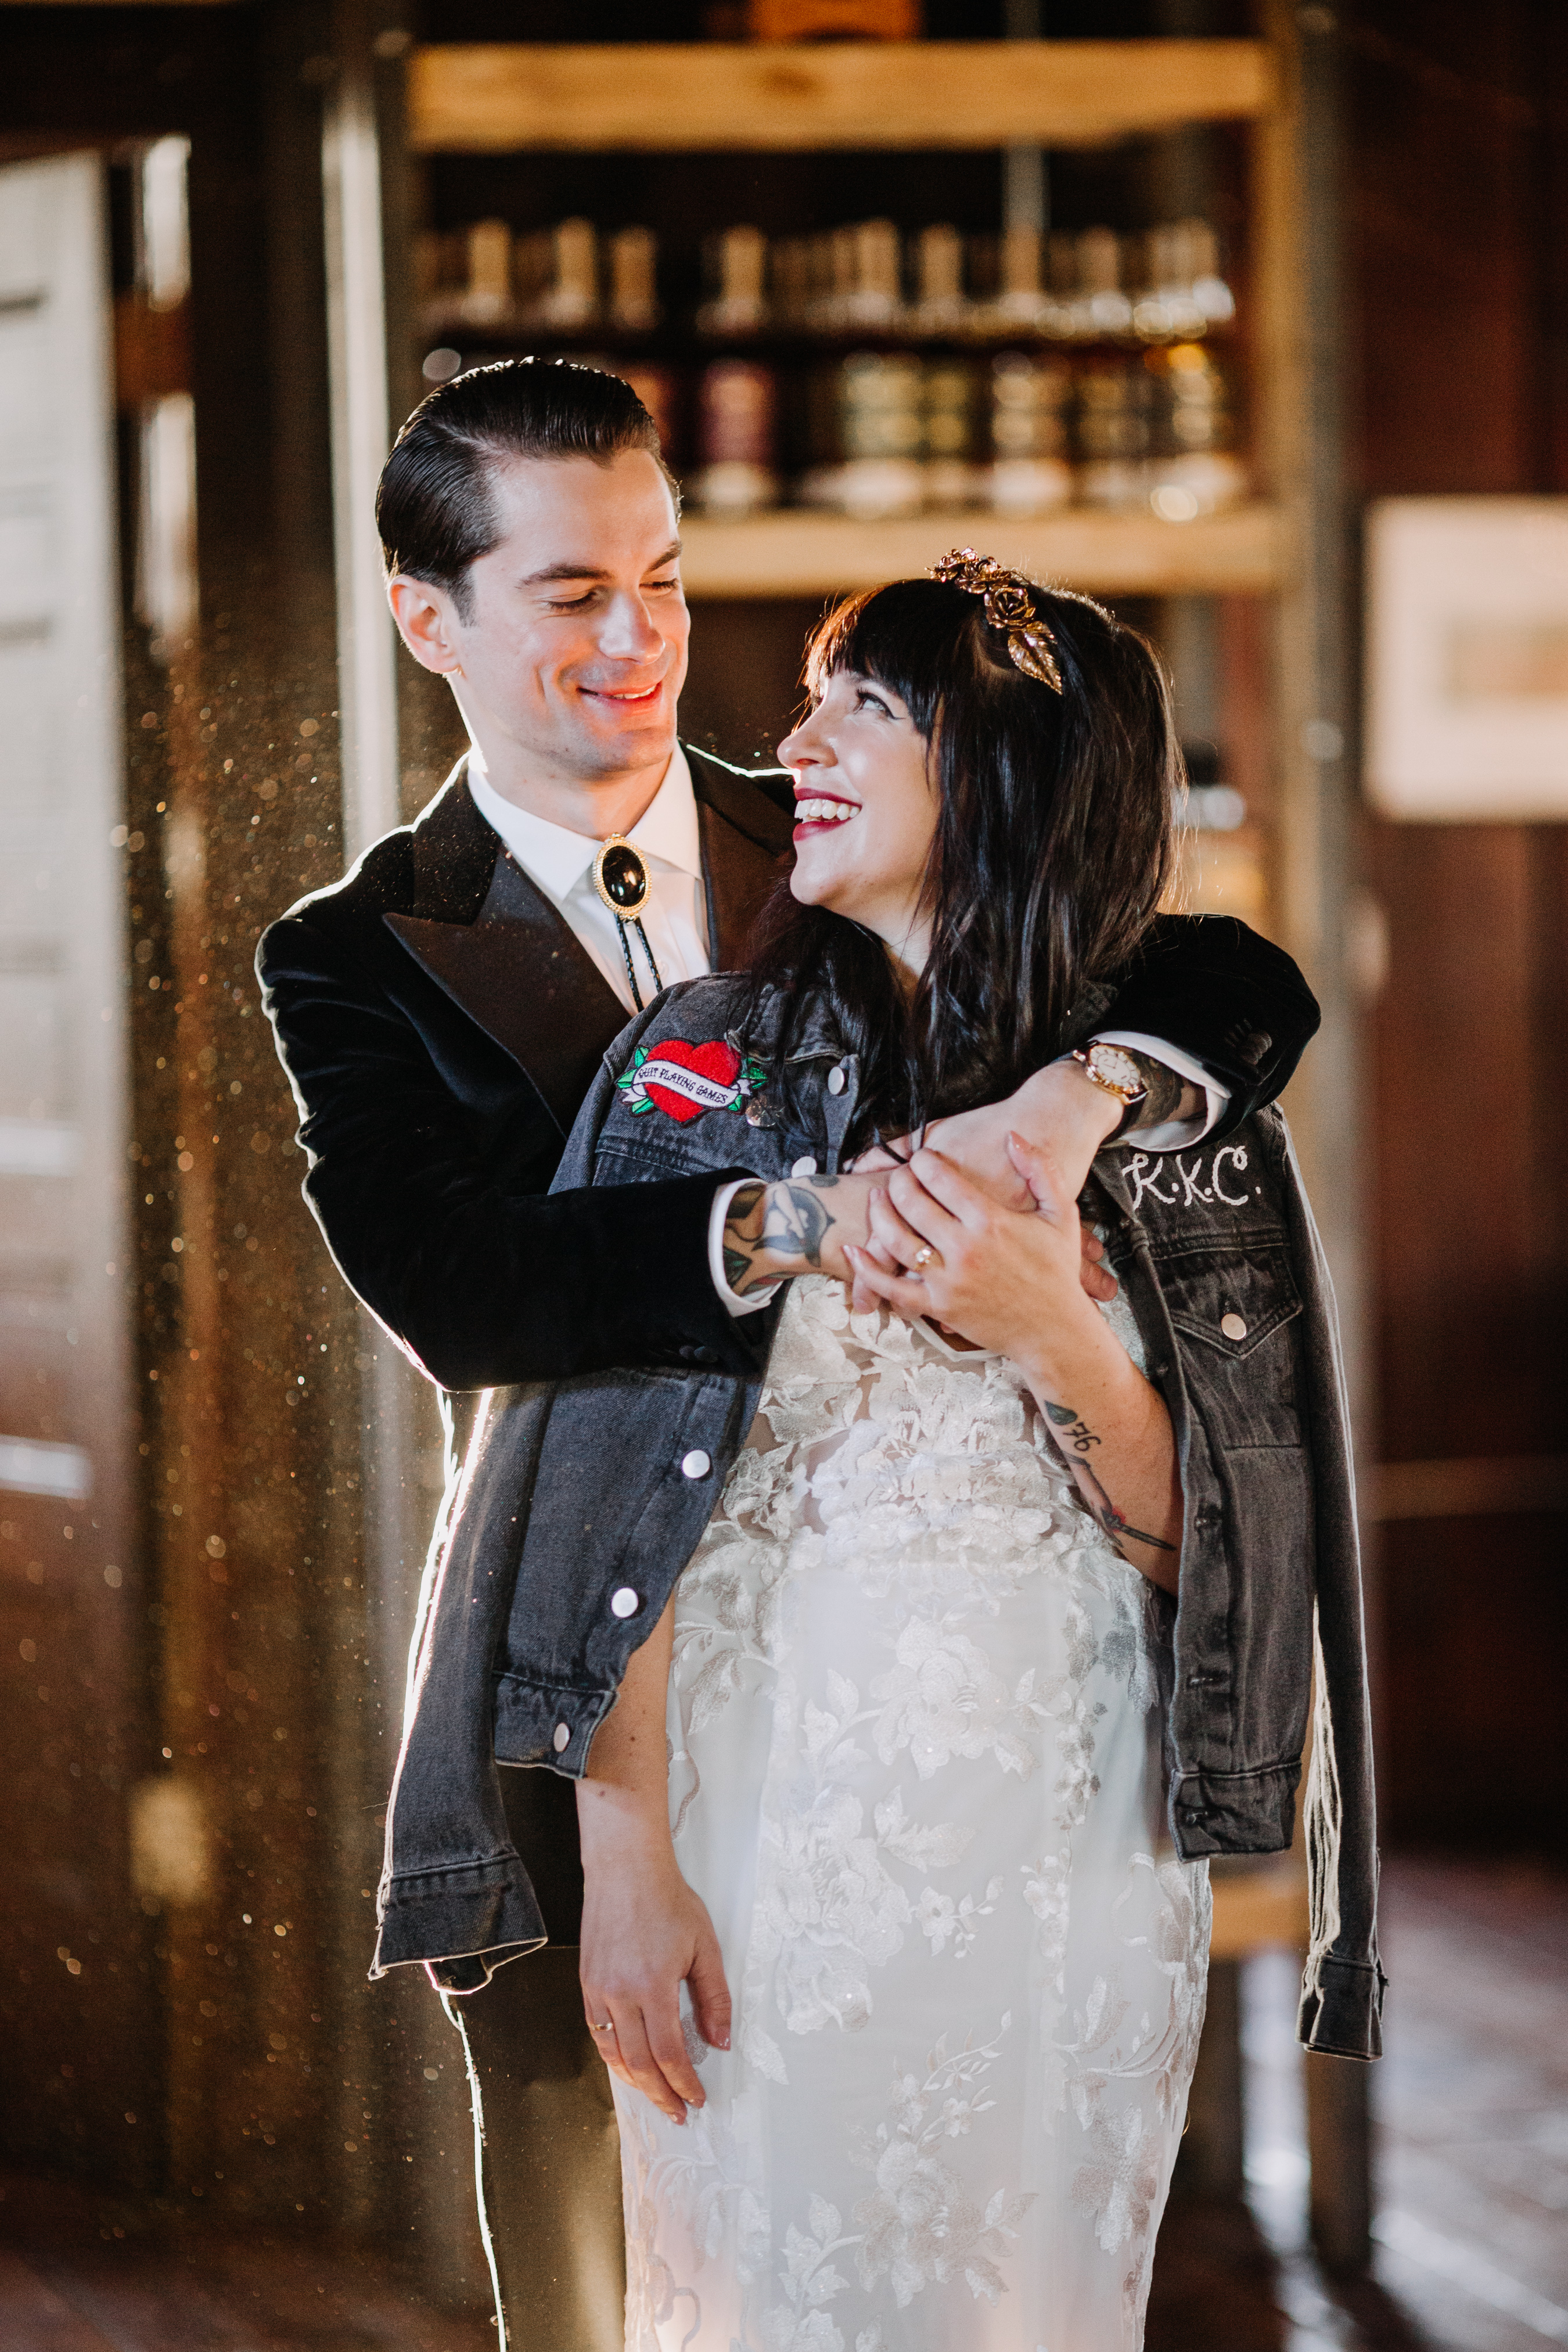 Whimsical New Liberty Distillery Wedding Planned by The Styled Bride | www.thestyledbride.com